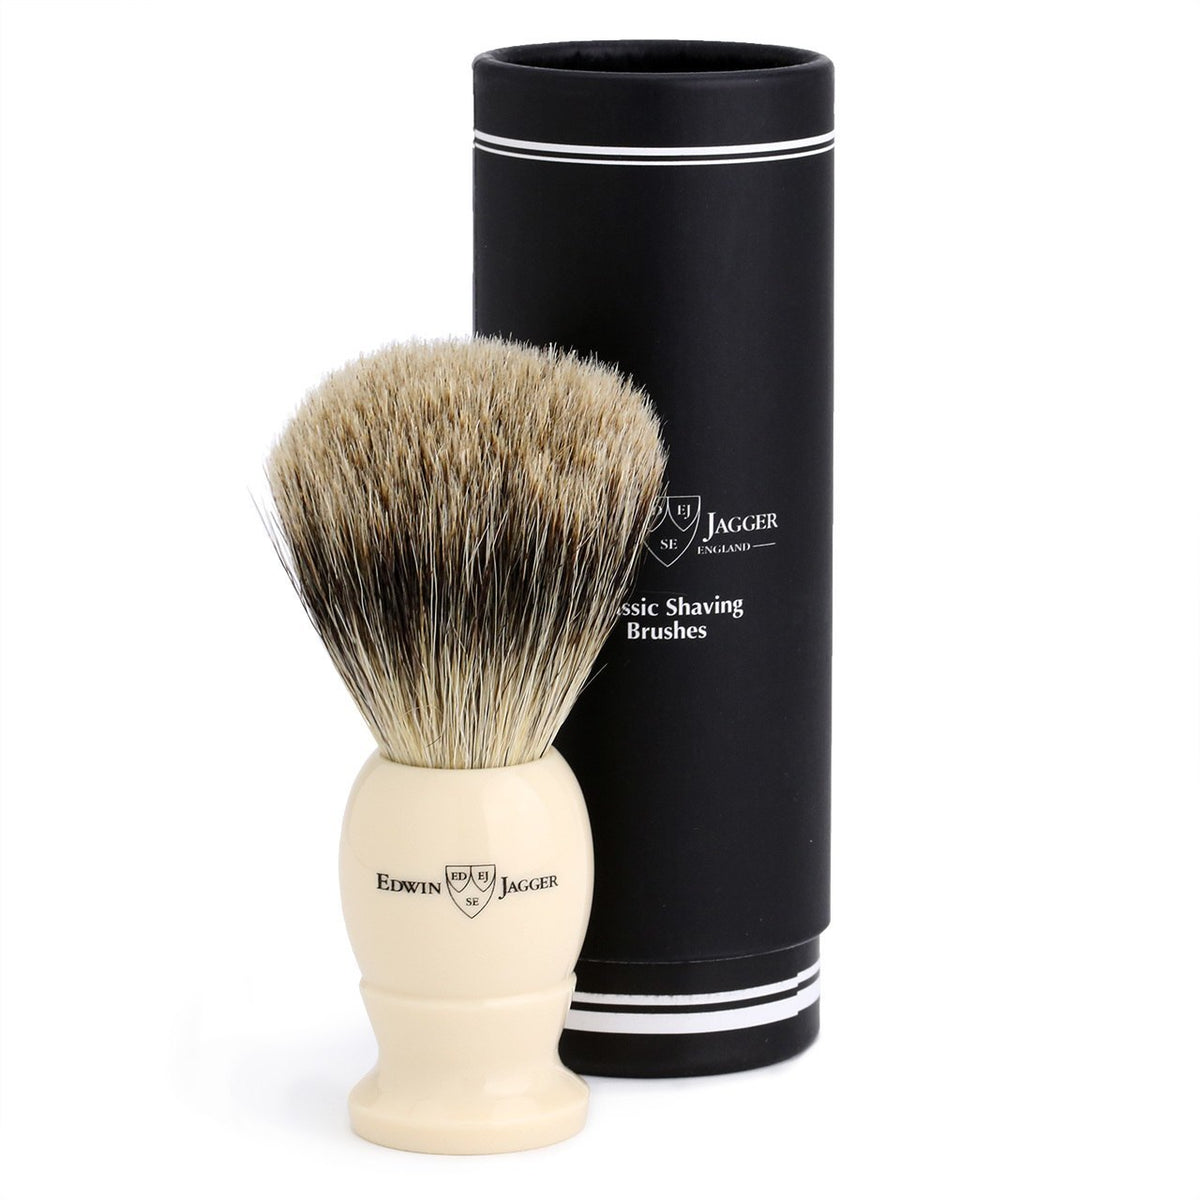 Edwin Jagger Best Badger Large Shaving Brush - Imitation Ivory